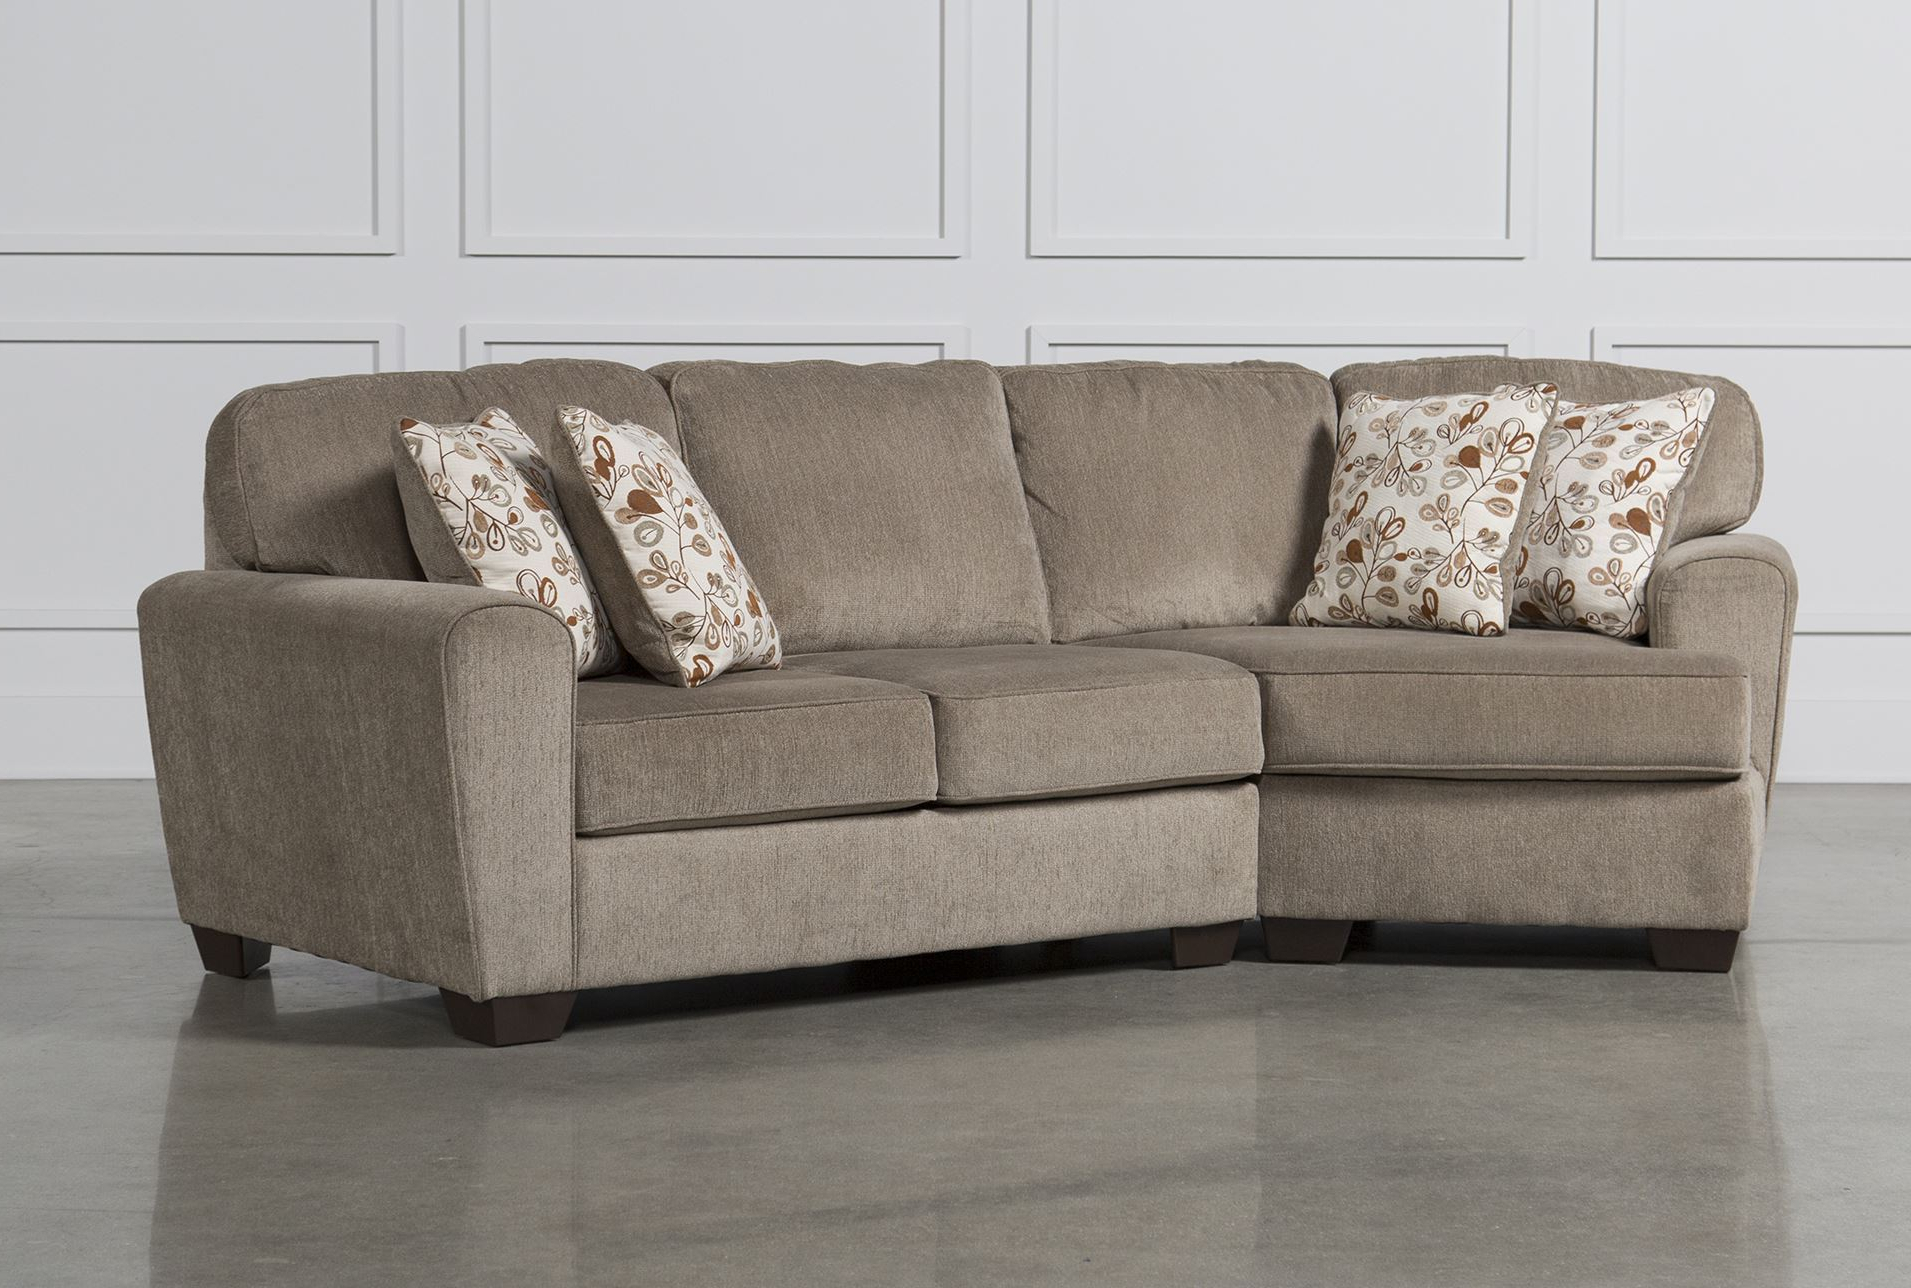 Kerri 2 Piece Sectionals With Raf Chaise With Regard To Current Awesome Collection Of 2 Piece Chaise Sectional In Kerri 2 Piece (Gallery 12 of 20)